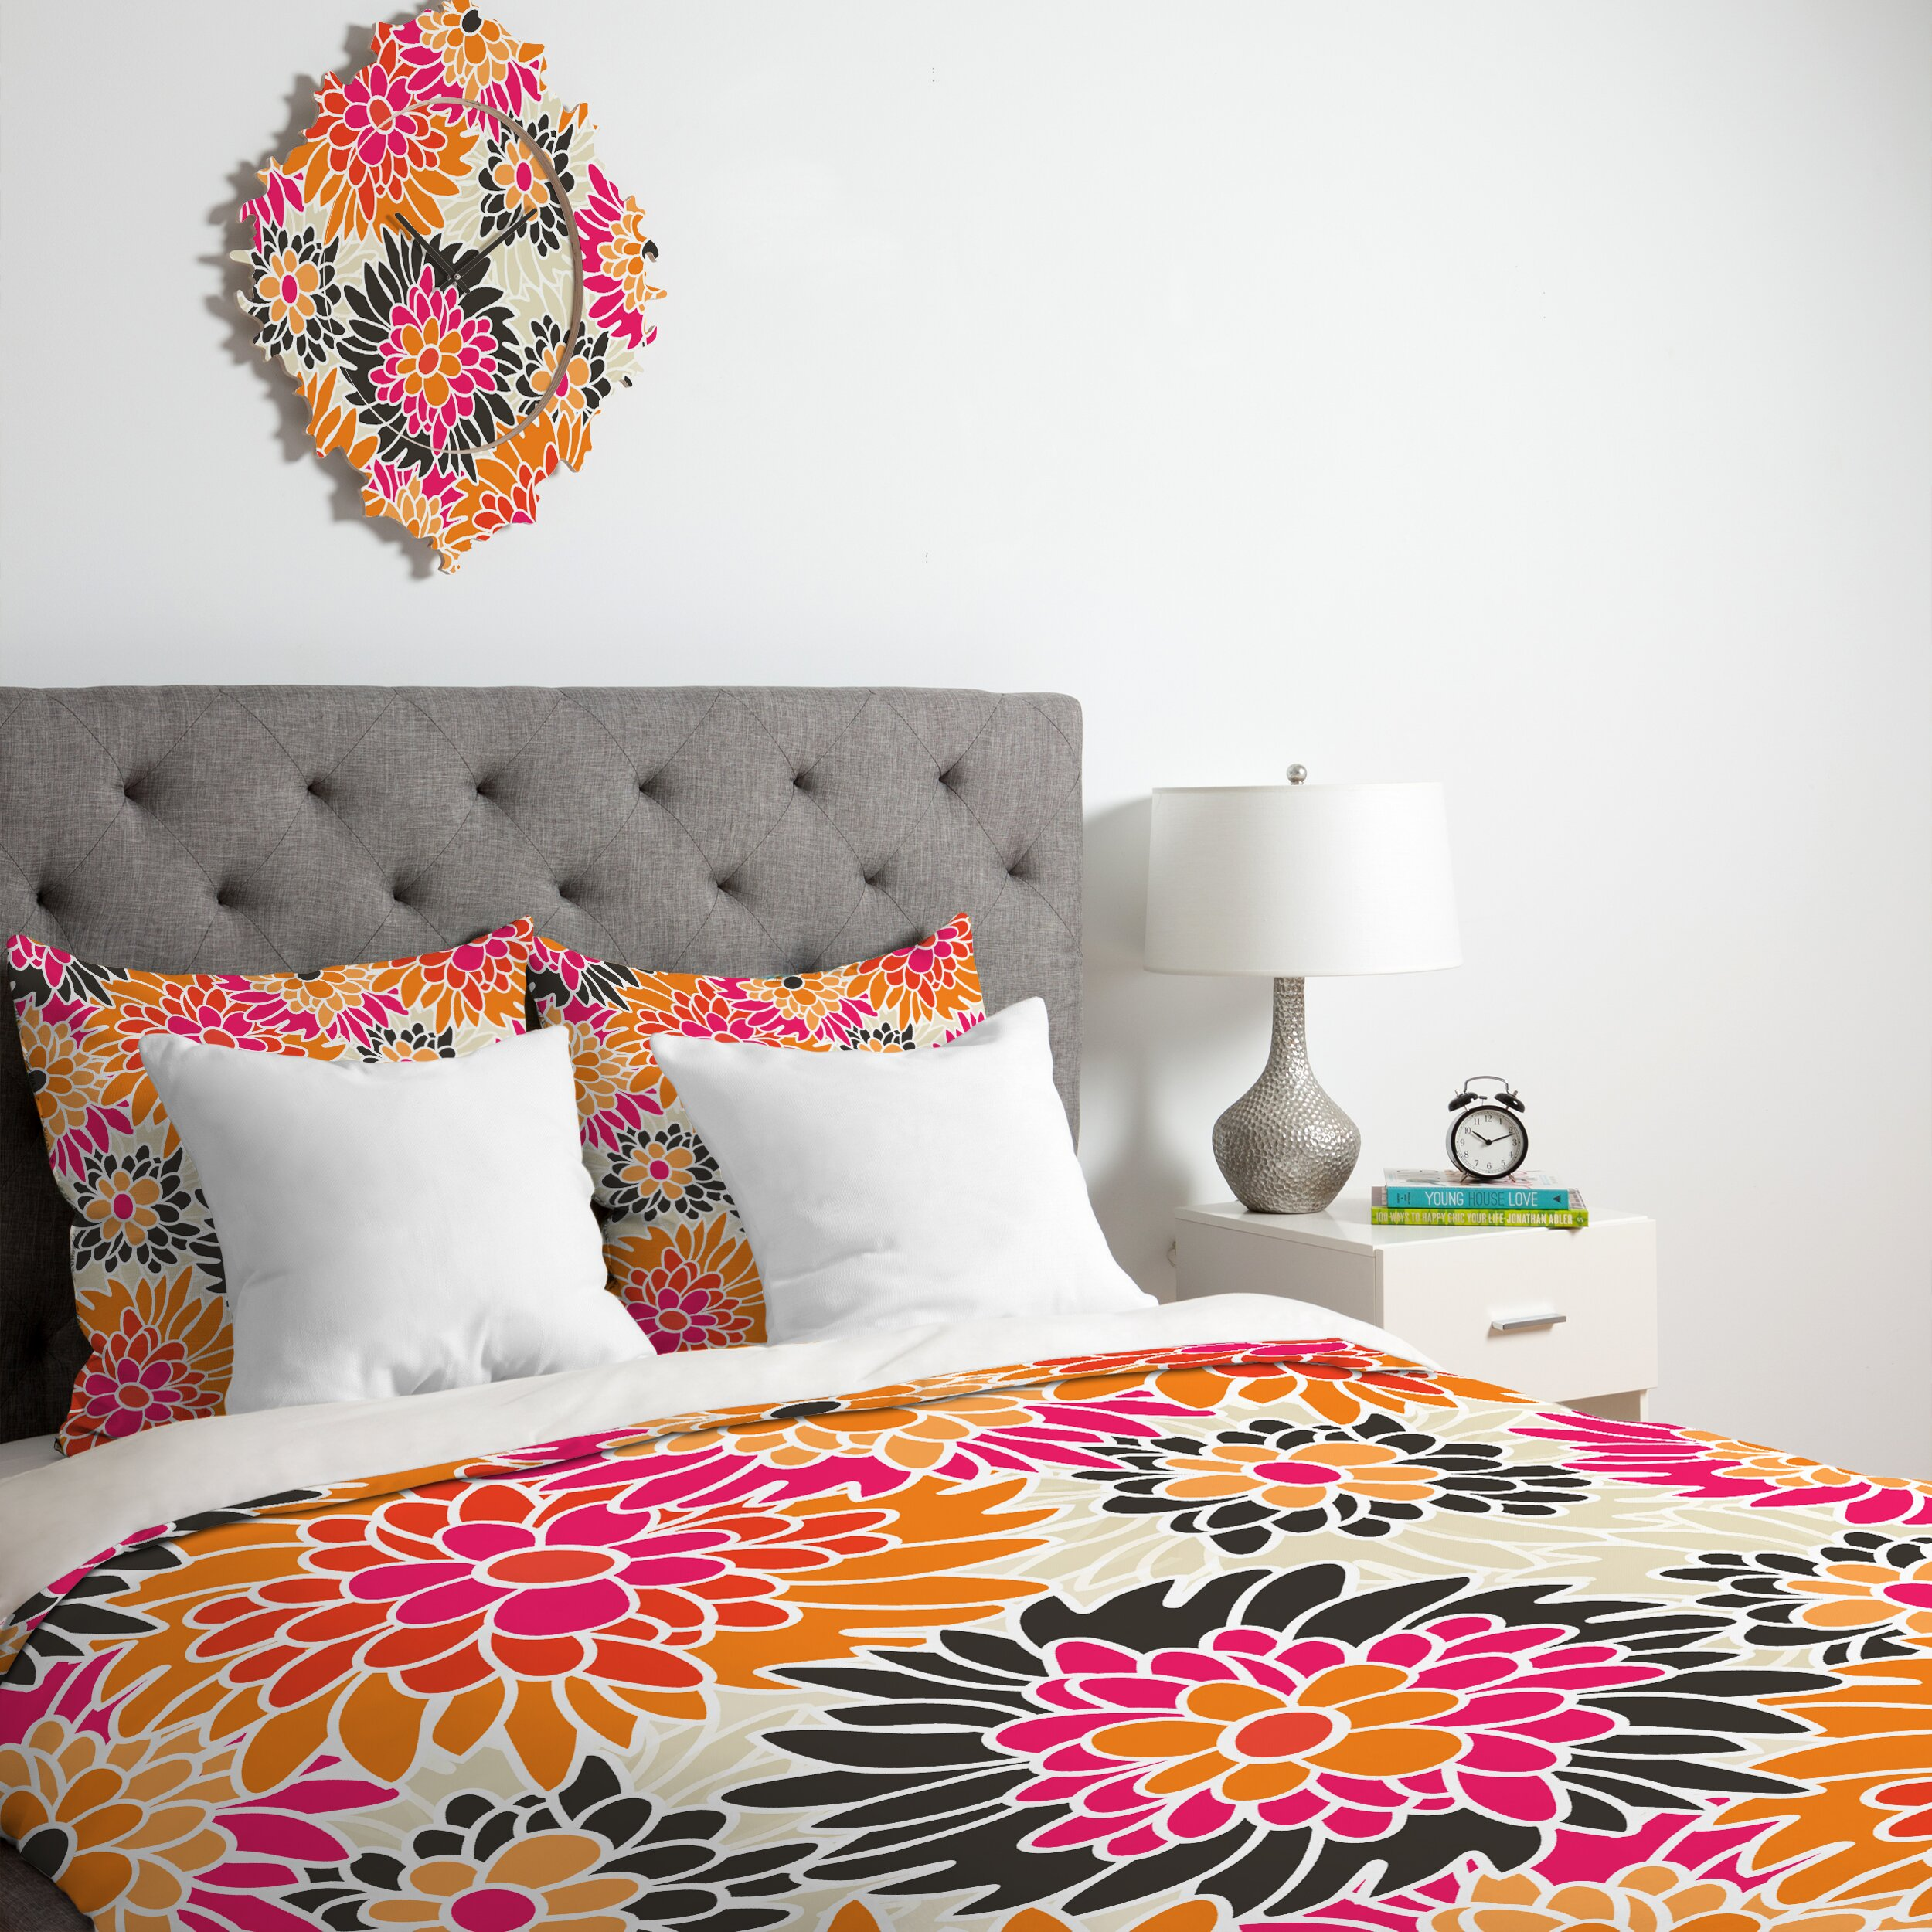 Pin Up Bed Covers Deny Designs Andrea Victoria Summer Tango Floral Duvet